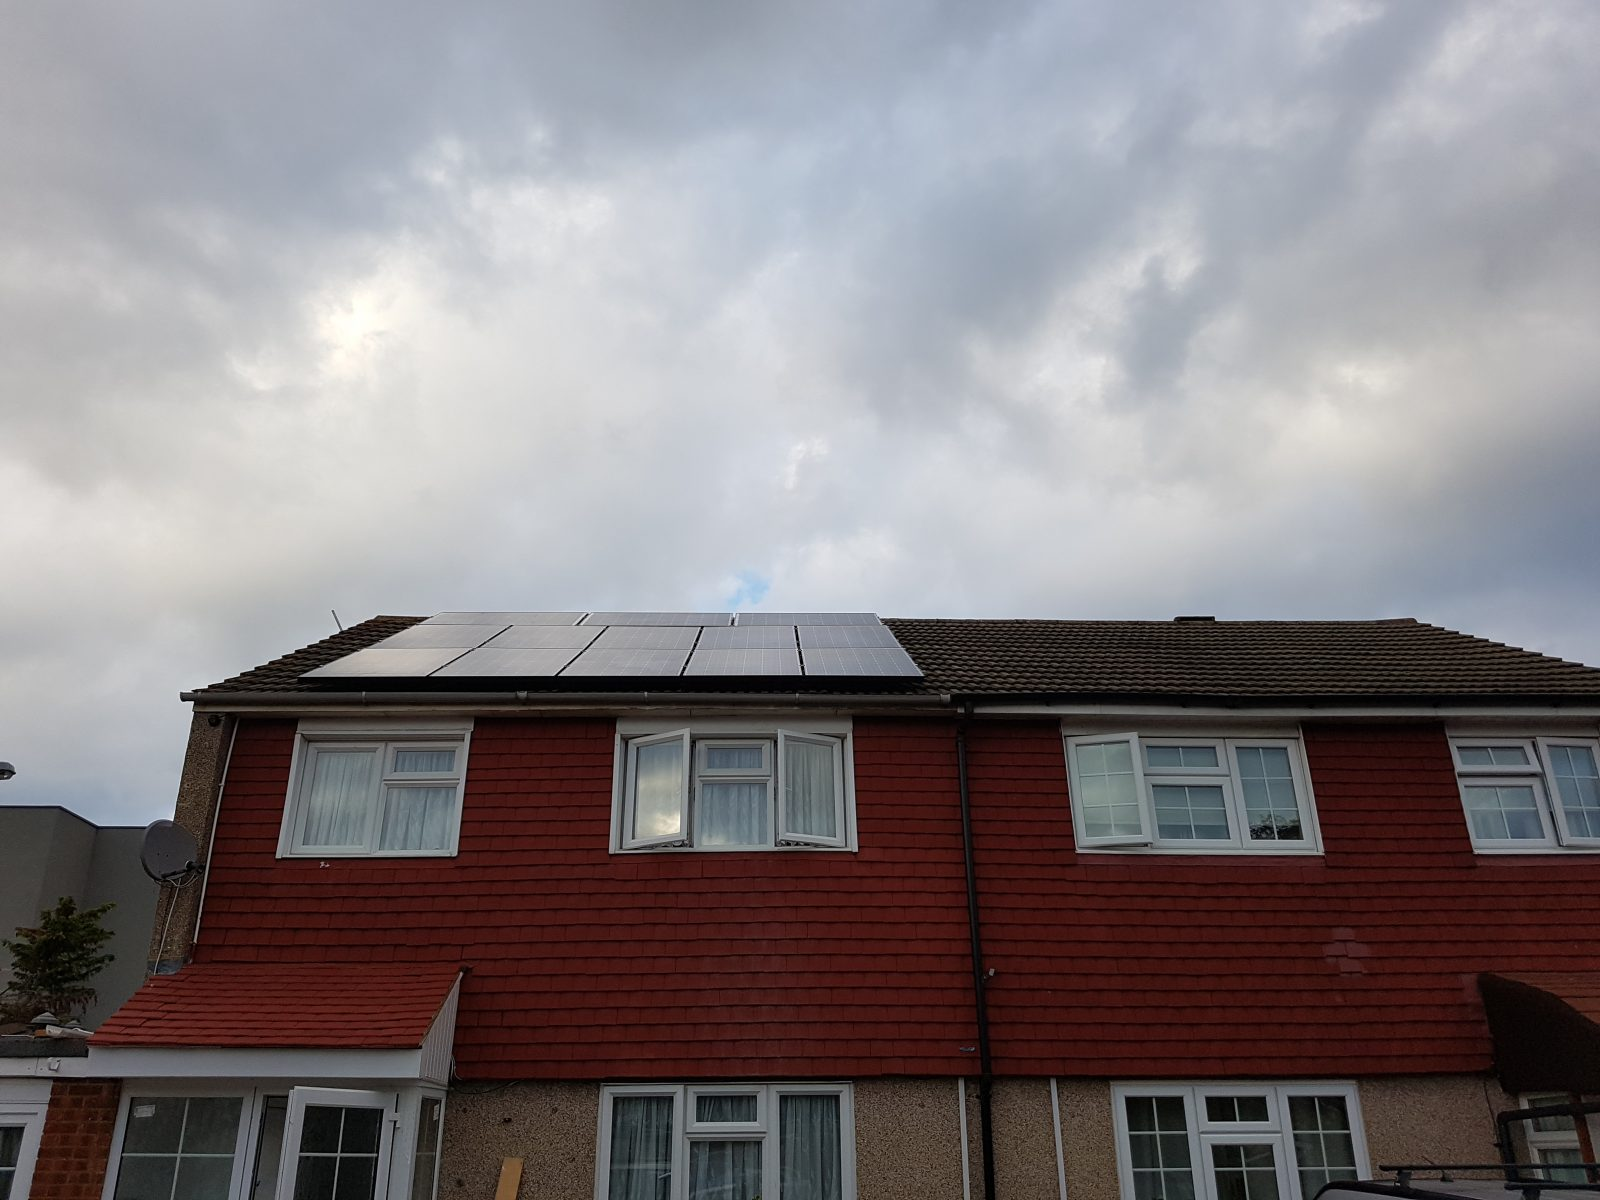 4 kWp Domestic Install – Slough